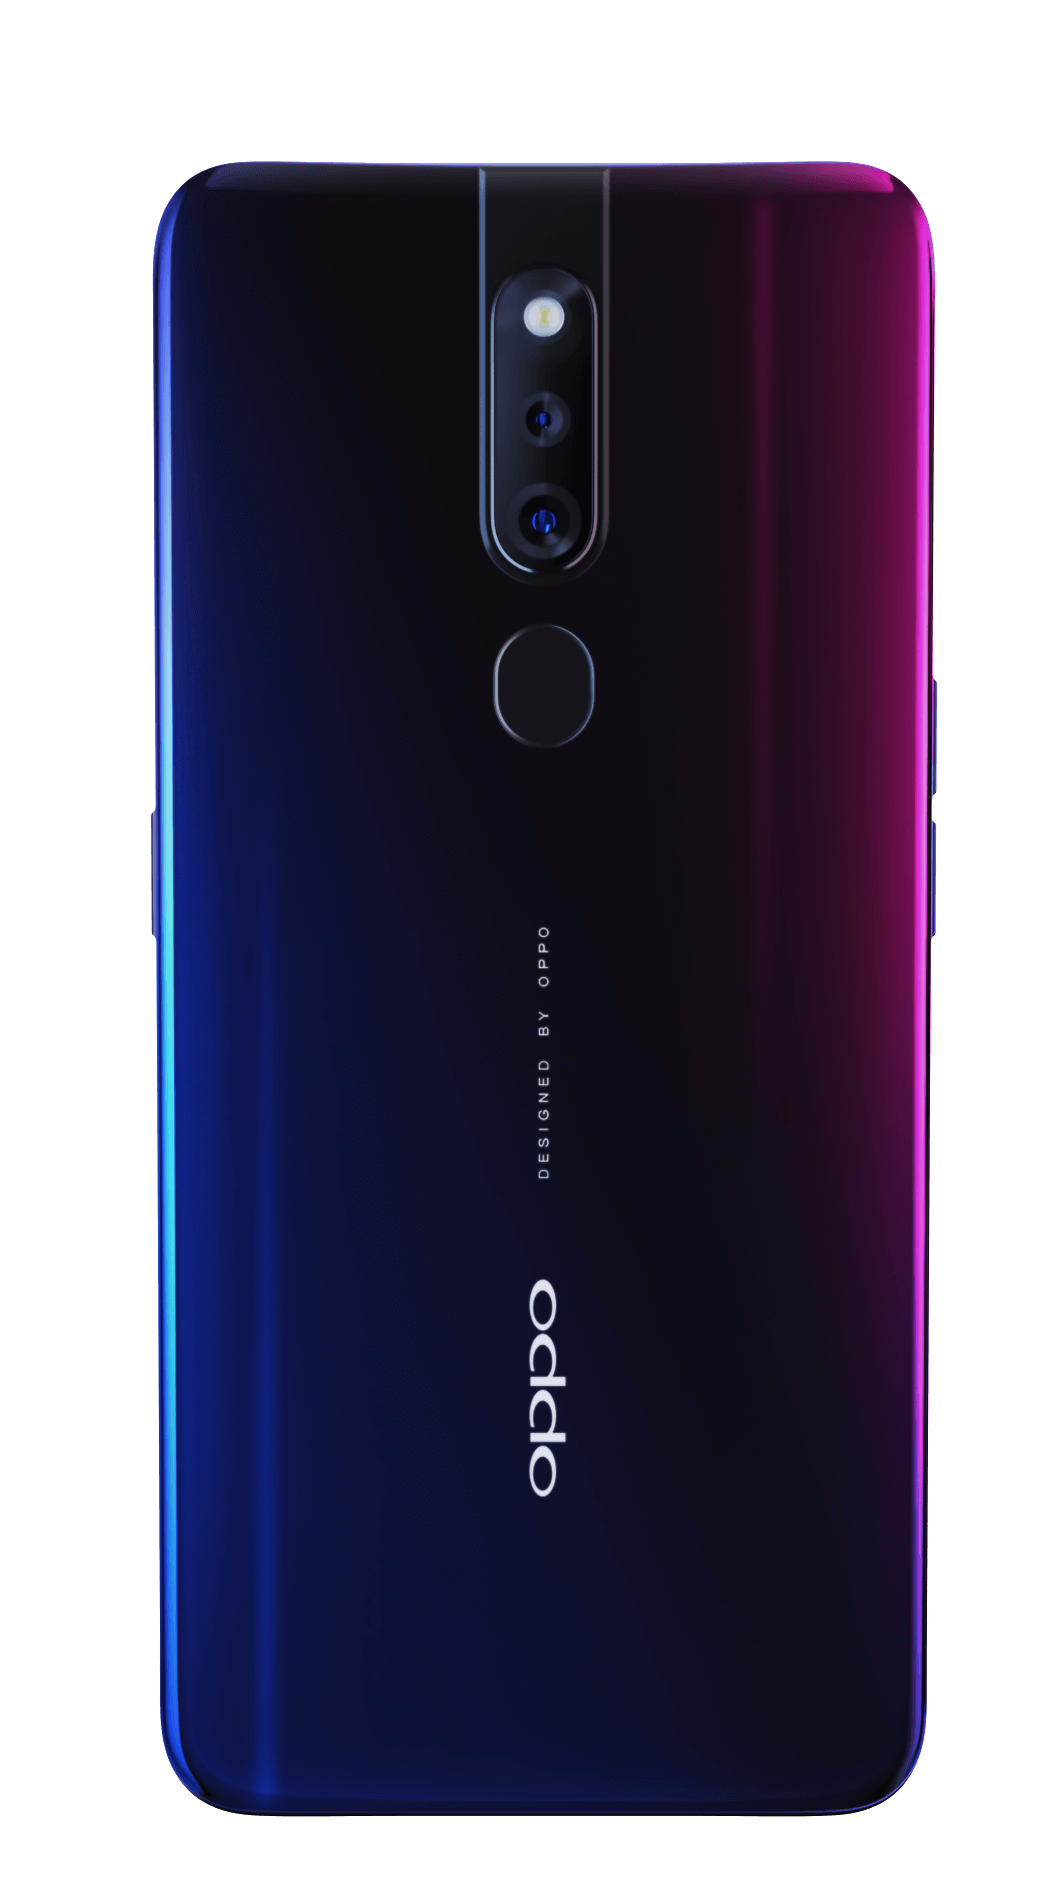 Introducing The Oppo F11 Pro Possible Preview Of The Oneplus 7 All Mobile Phones Oneplus Samsung Wallpaper